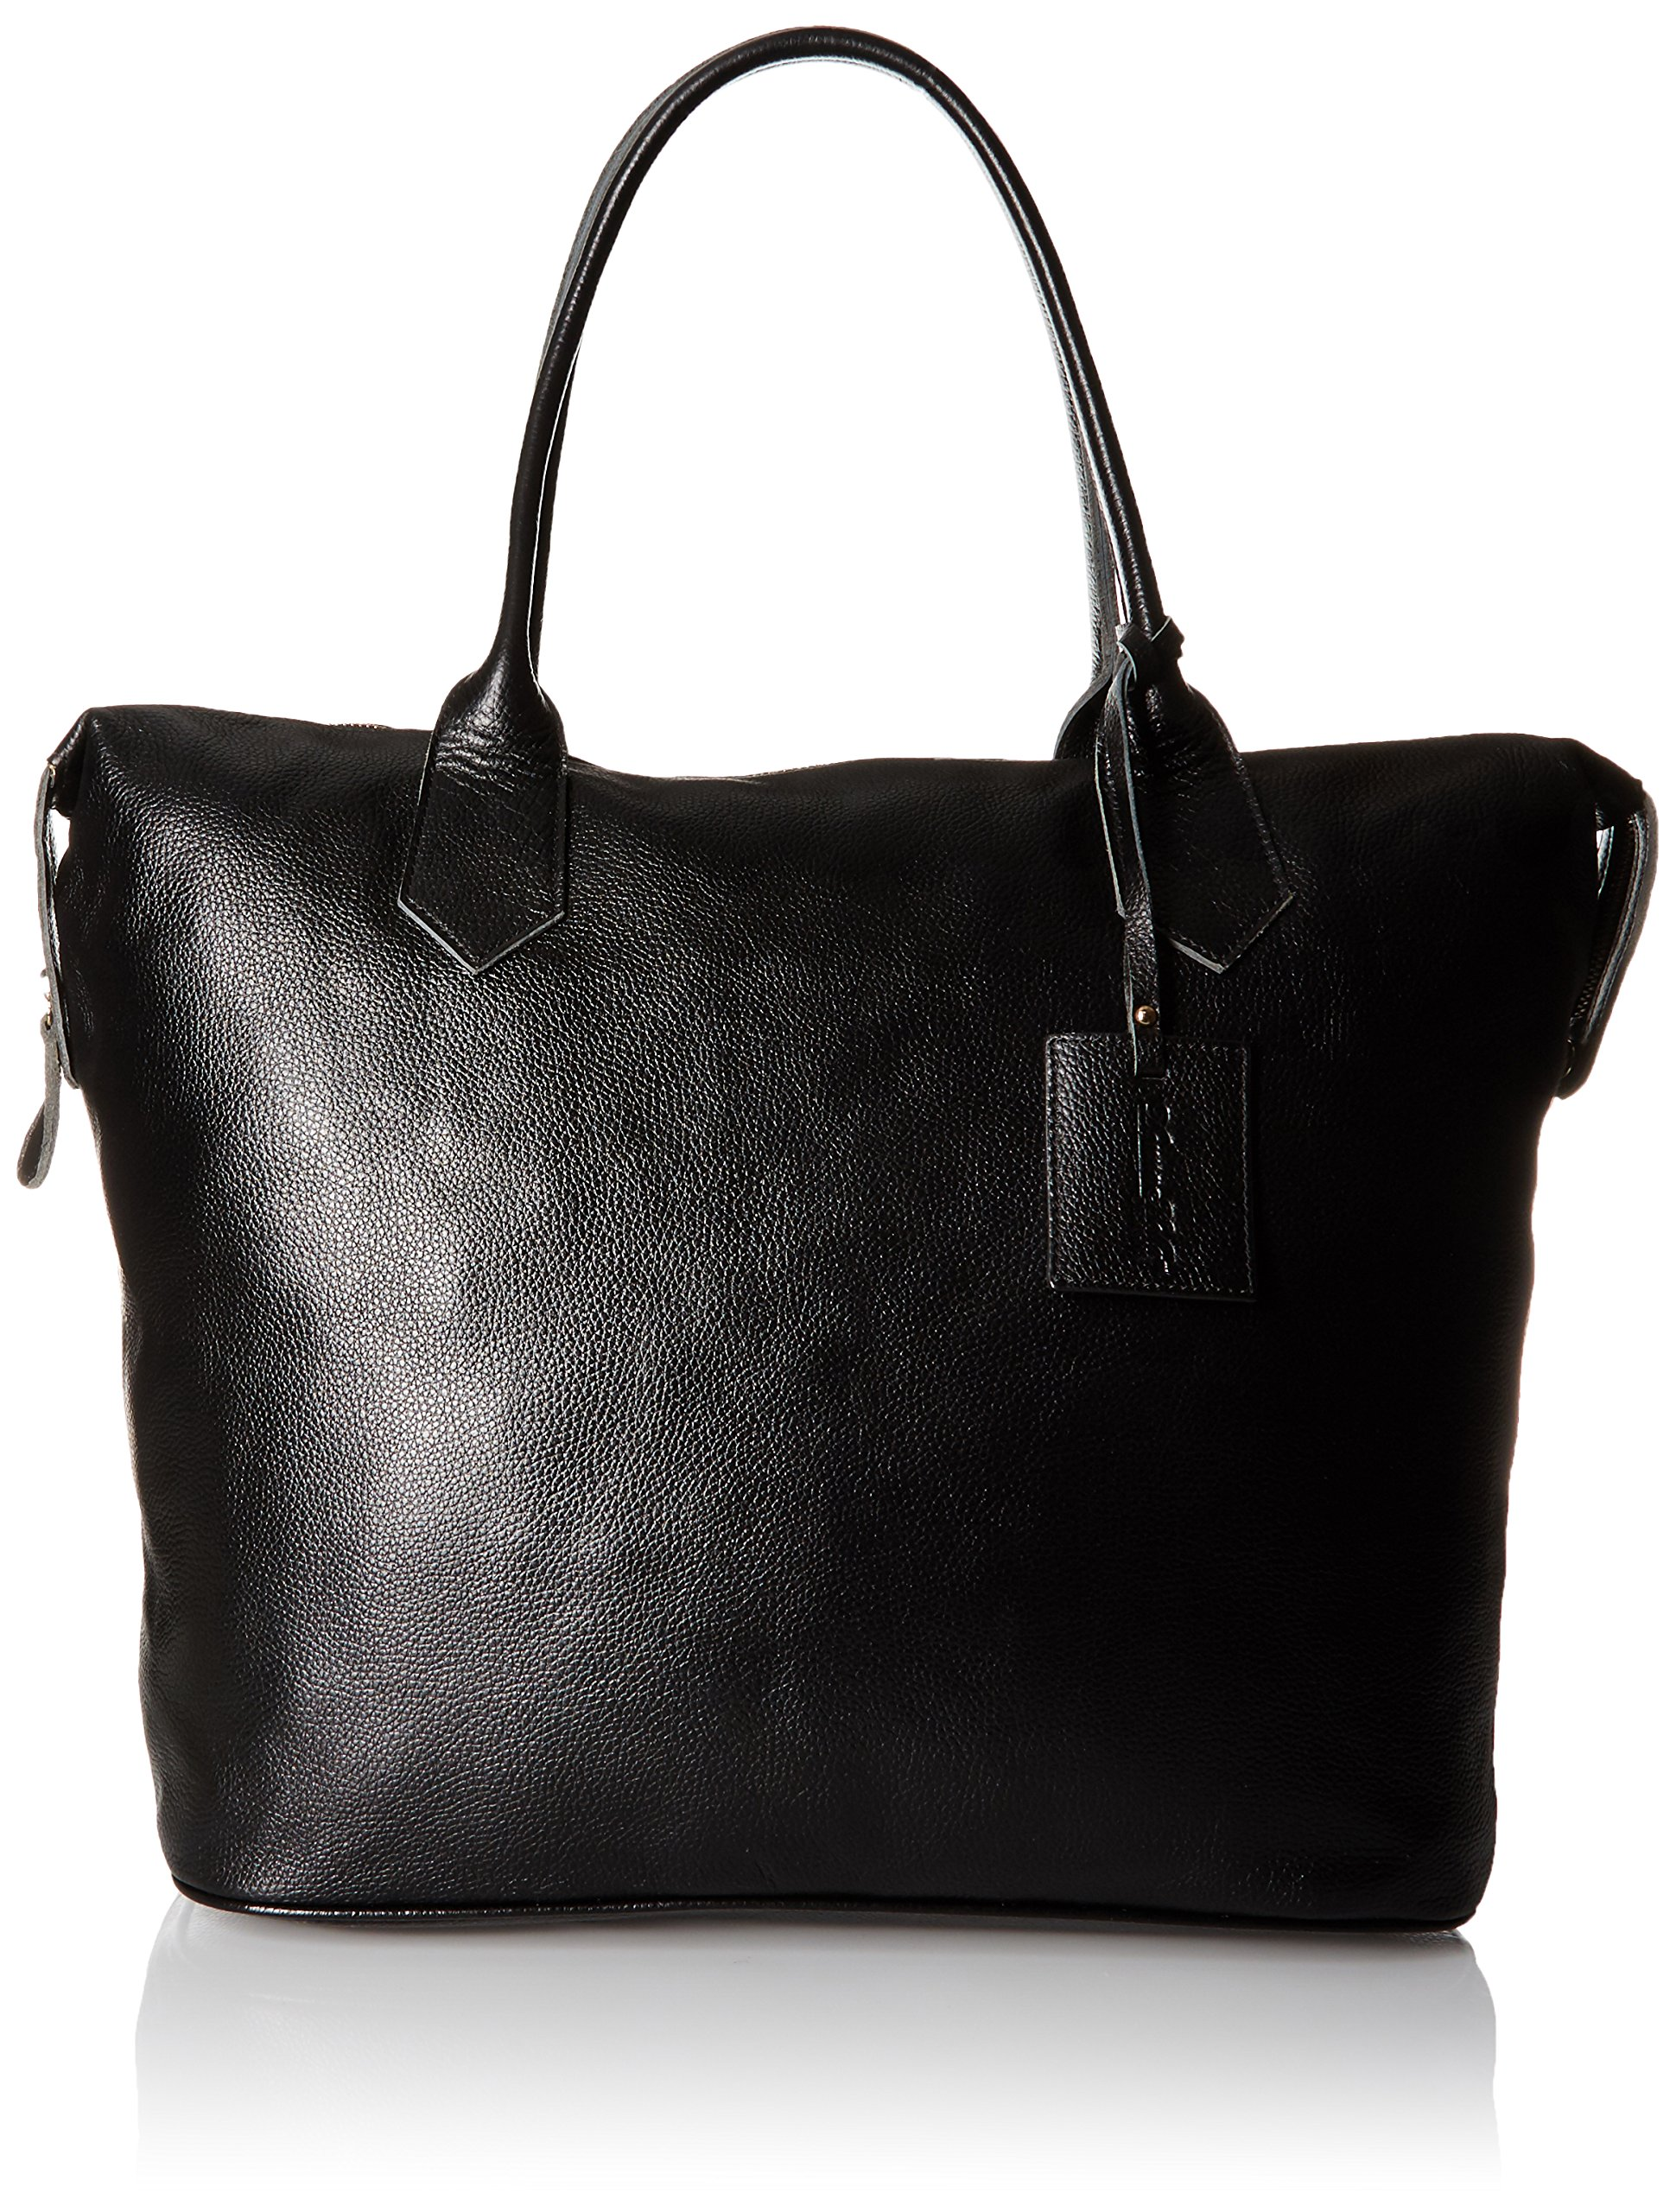 Donna Bella Designs Heron Leather Weekend Bag, Black by Donna Bella Designs